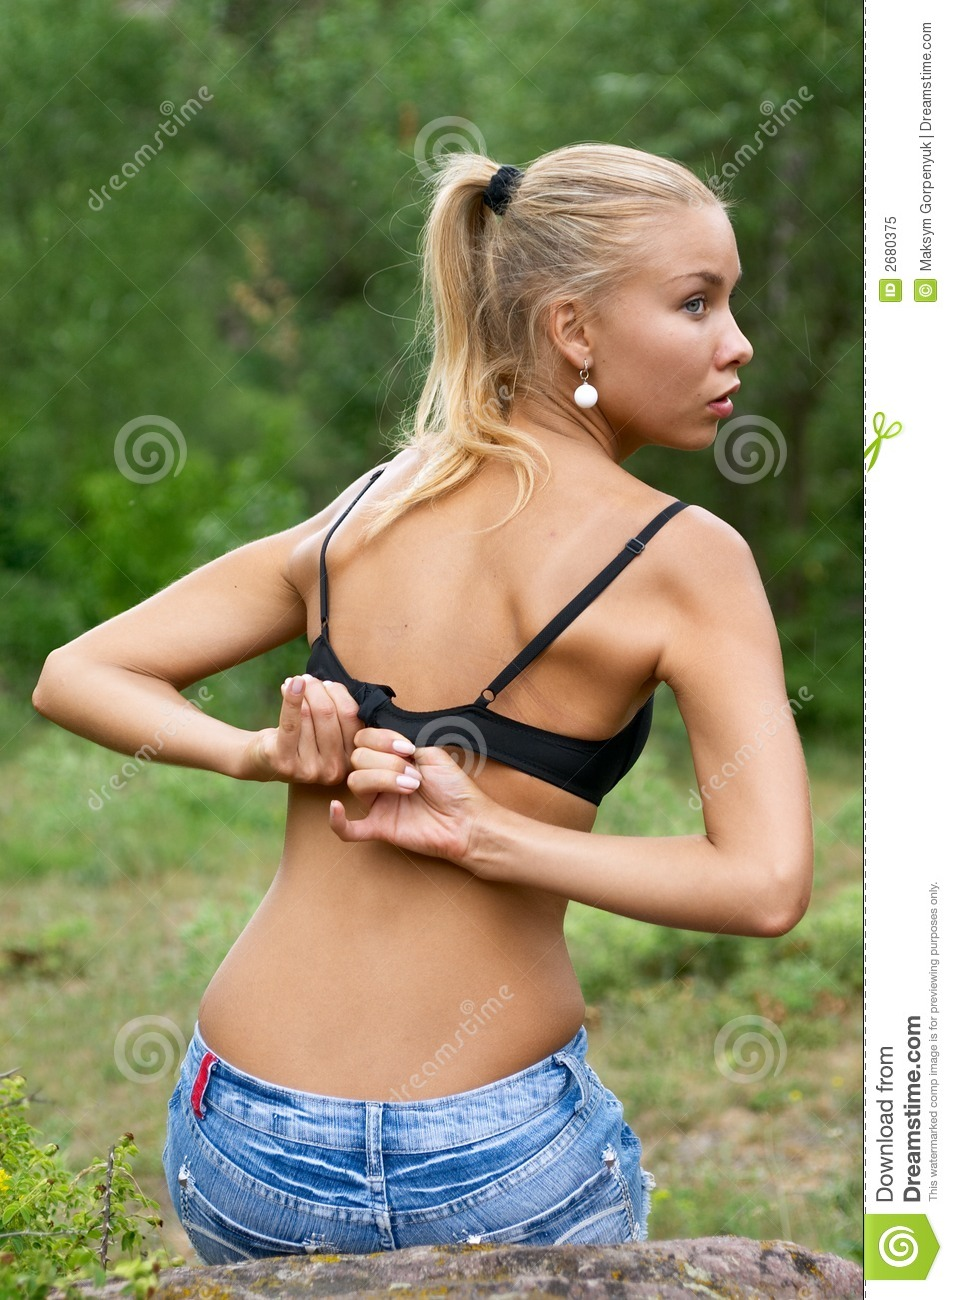 undressing blonde woman stock image. image of blonde, beautiful